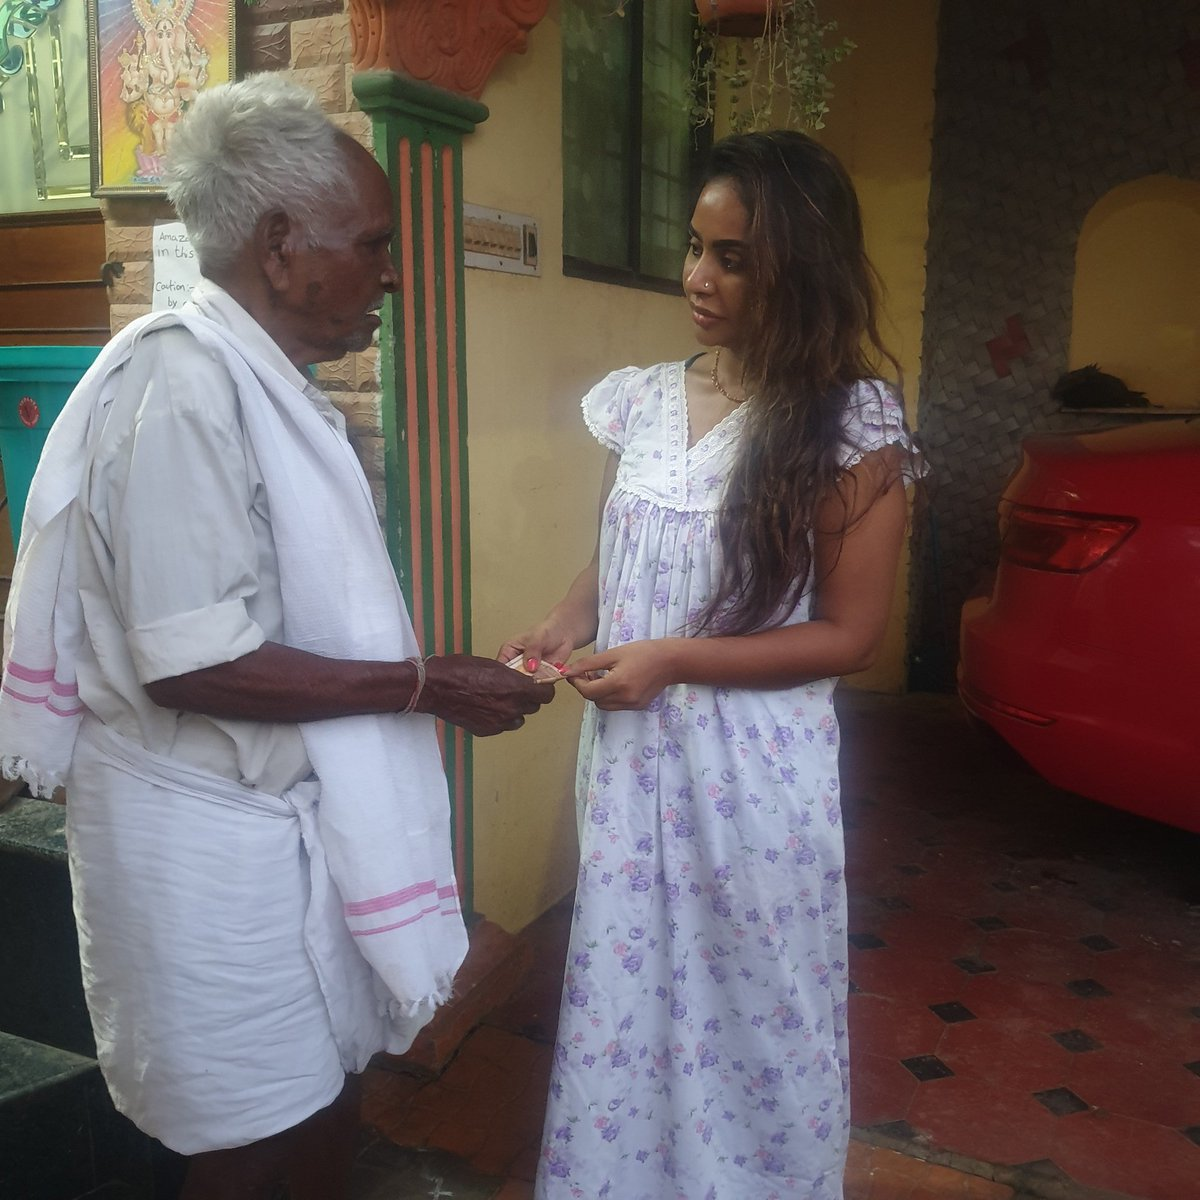 THATHA You rich by your heart ❤, I AM POOR BY my mind.. Thanks for believing me that I stand for humanity.. god bless u 🙏